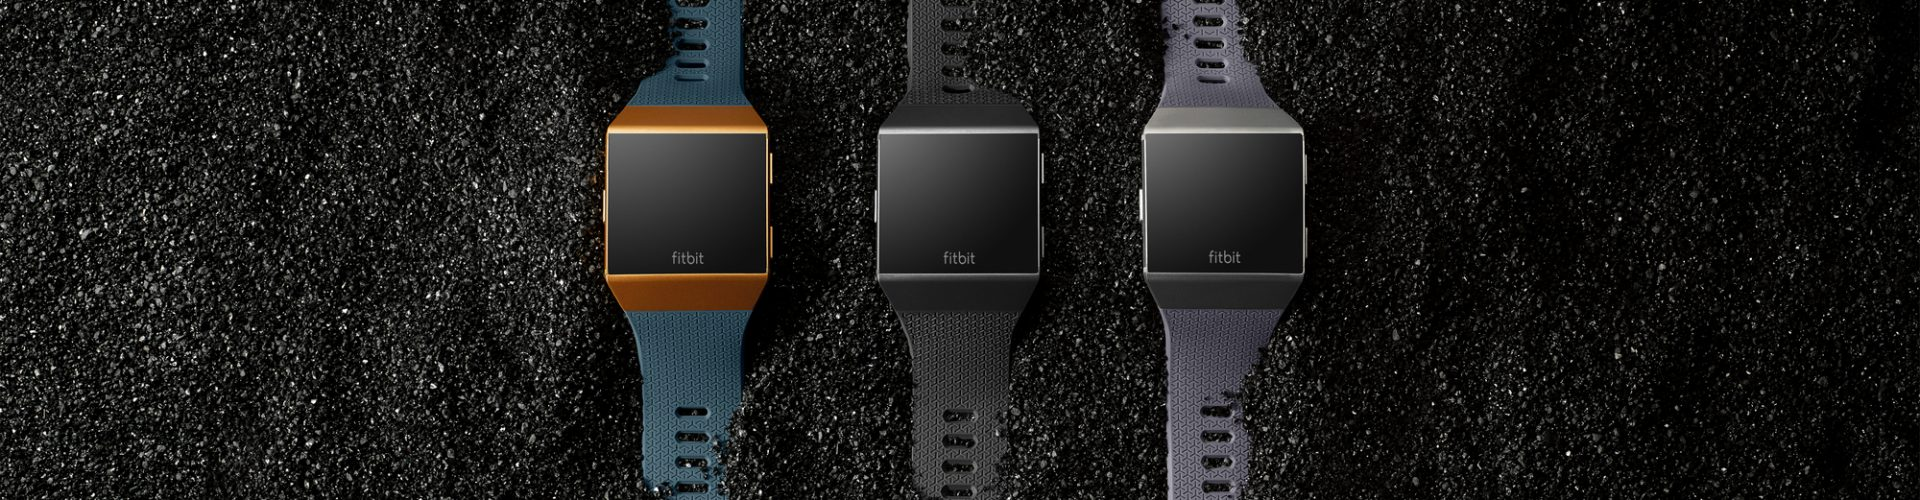 Get that summer body with Fitbit's new wearables